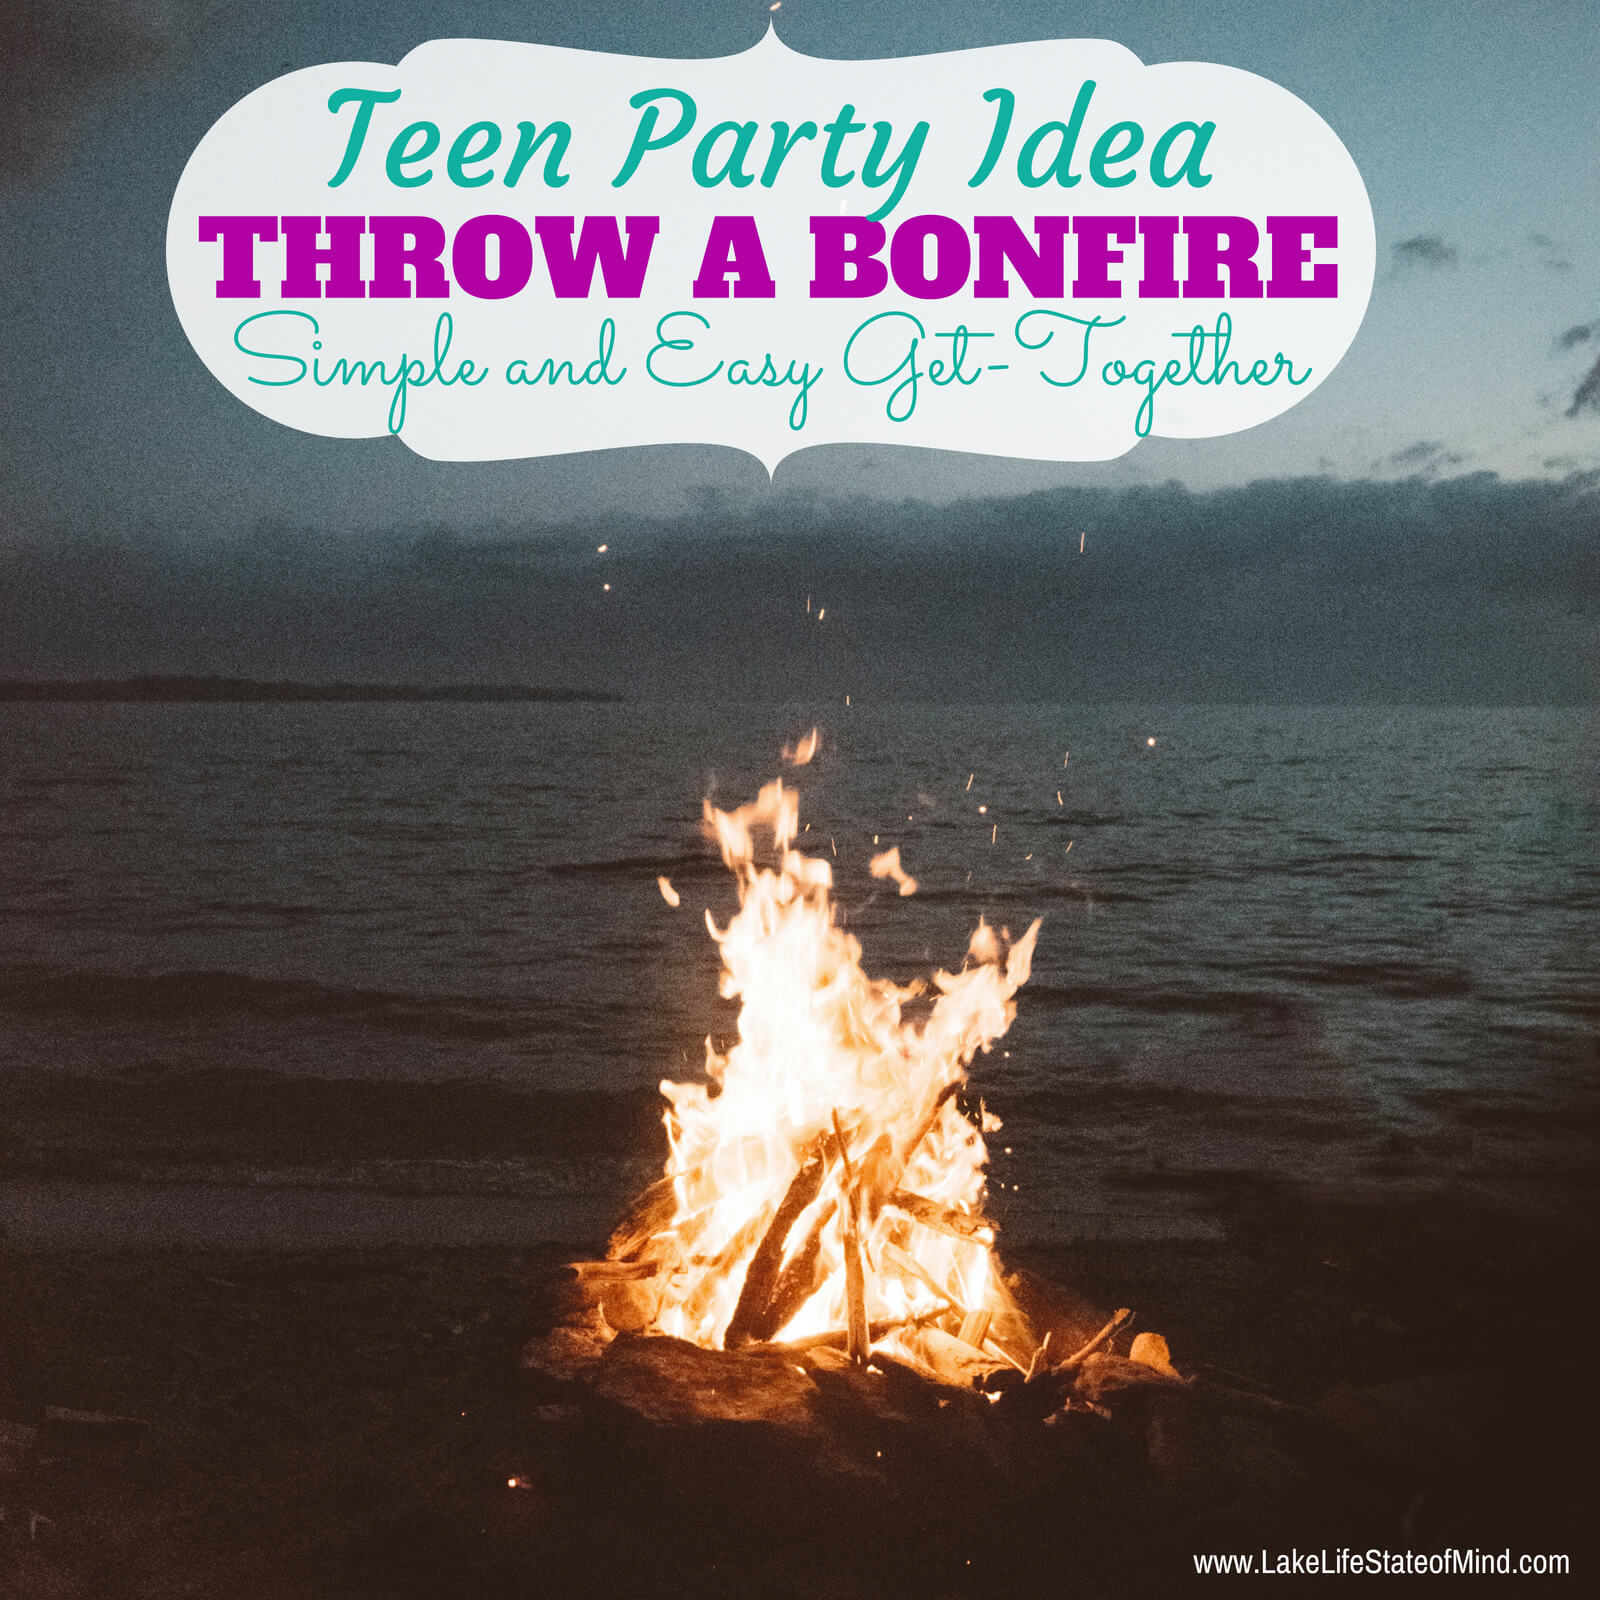 Bonfires! A fun way to spend time with your teenager and their friends.